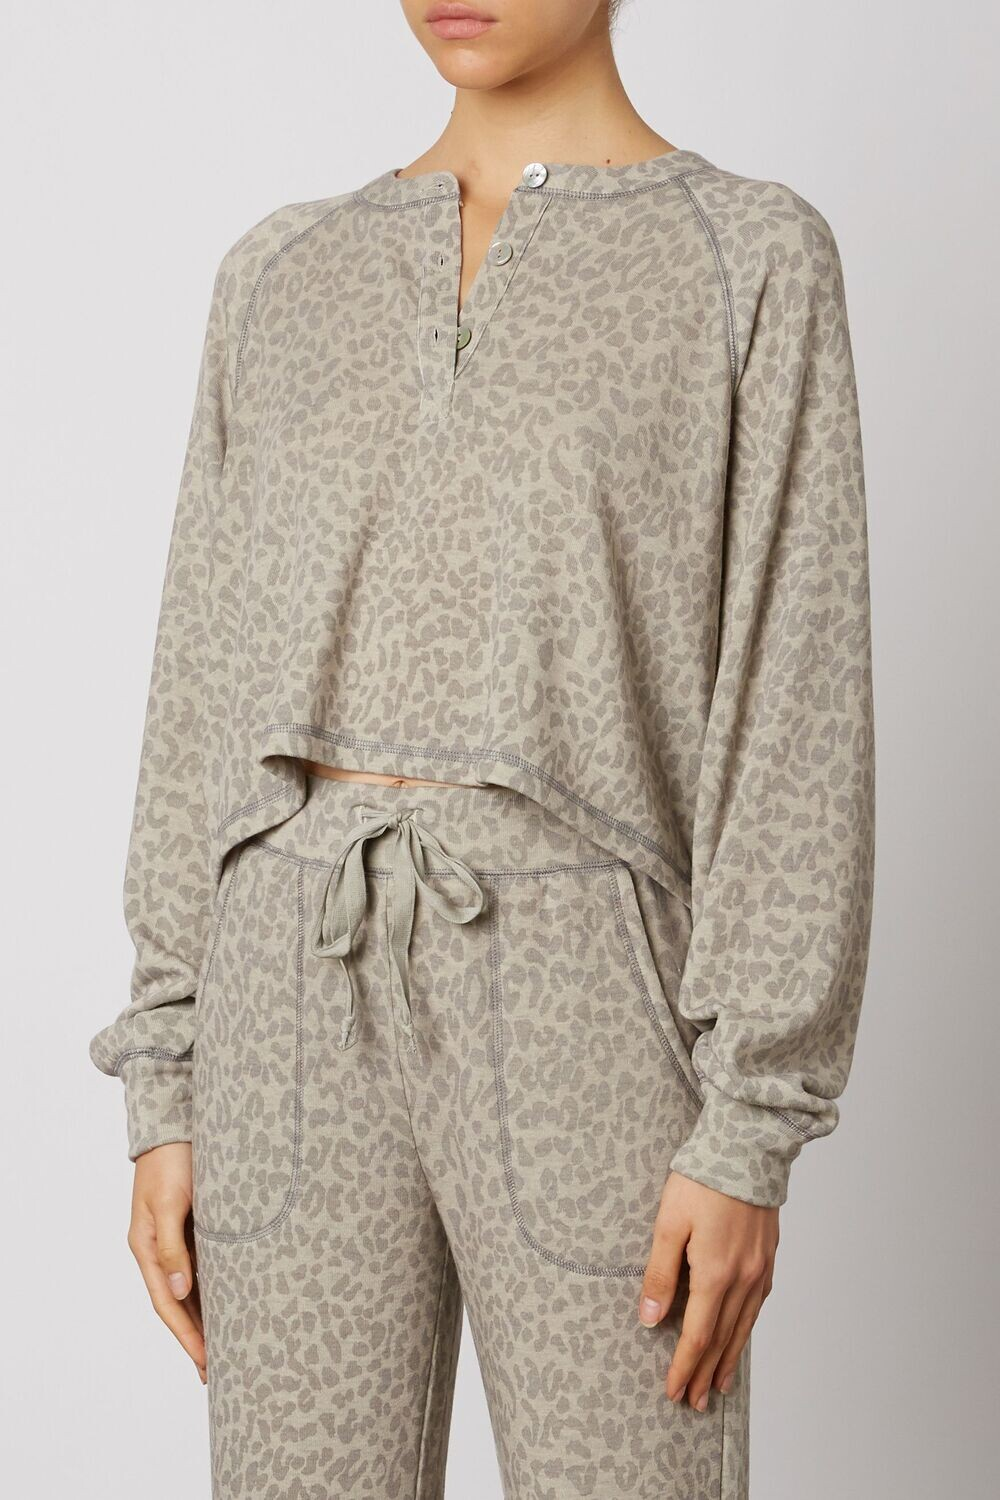 NIA - Contrast Stitch Jogger in Taupe